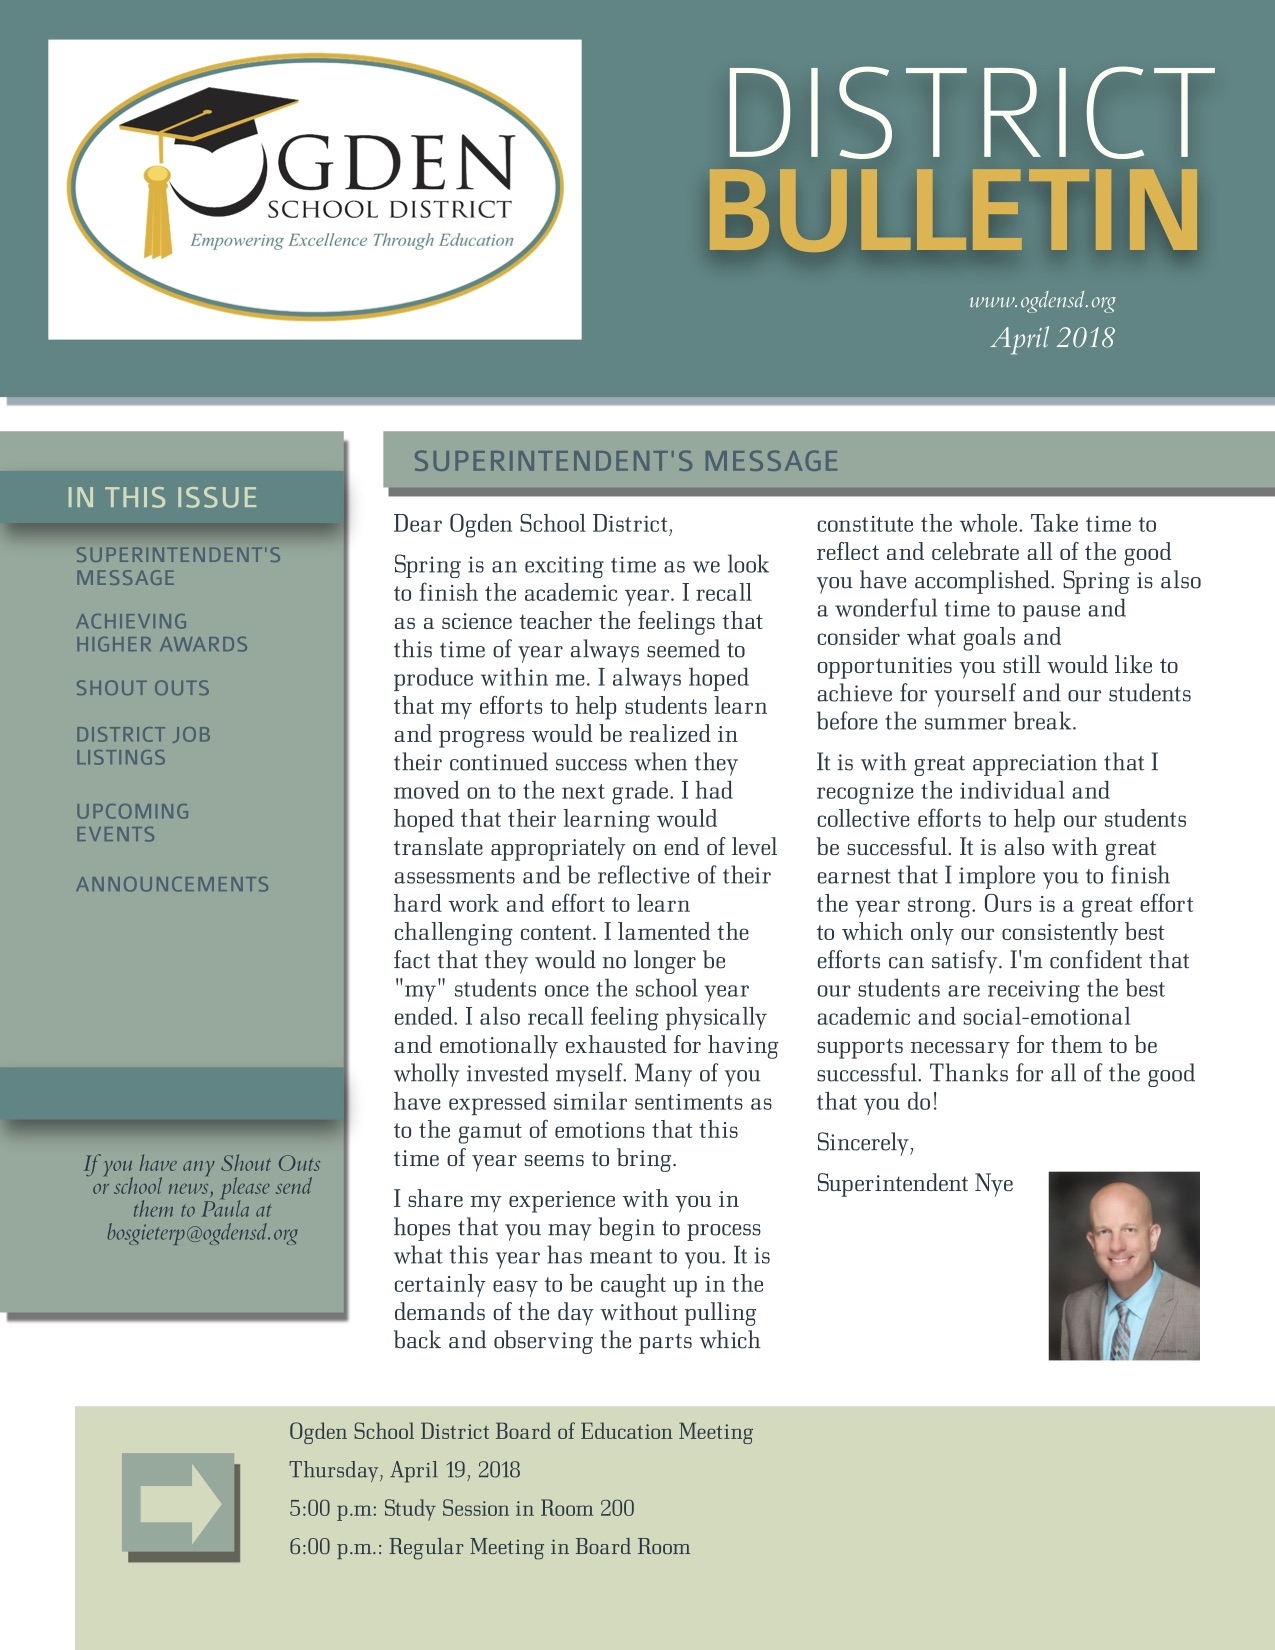 District Bulletin - April